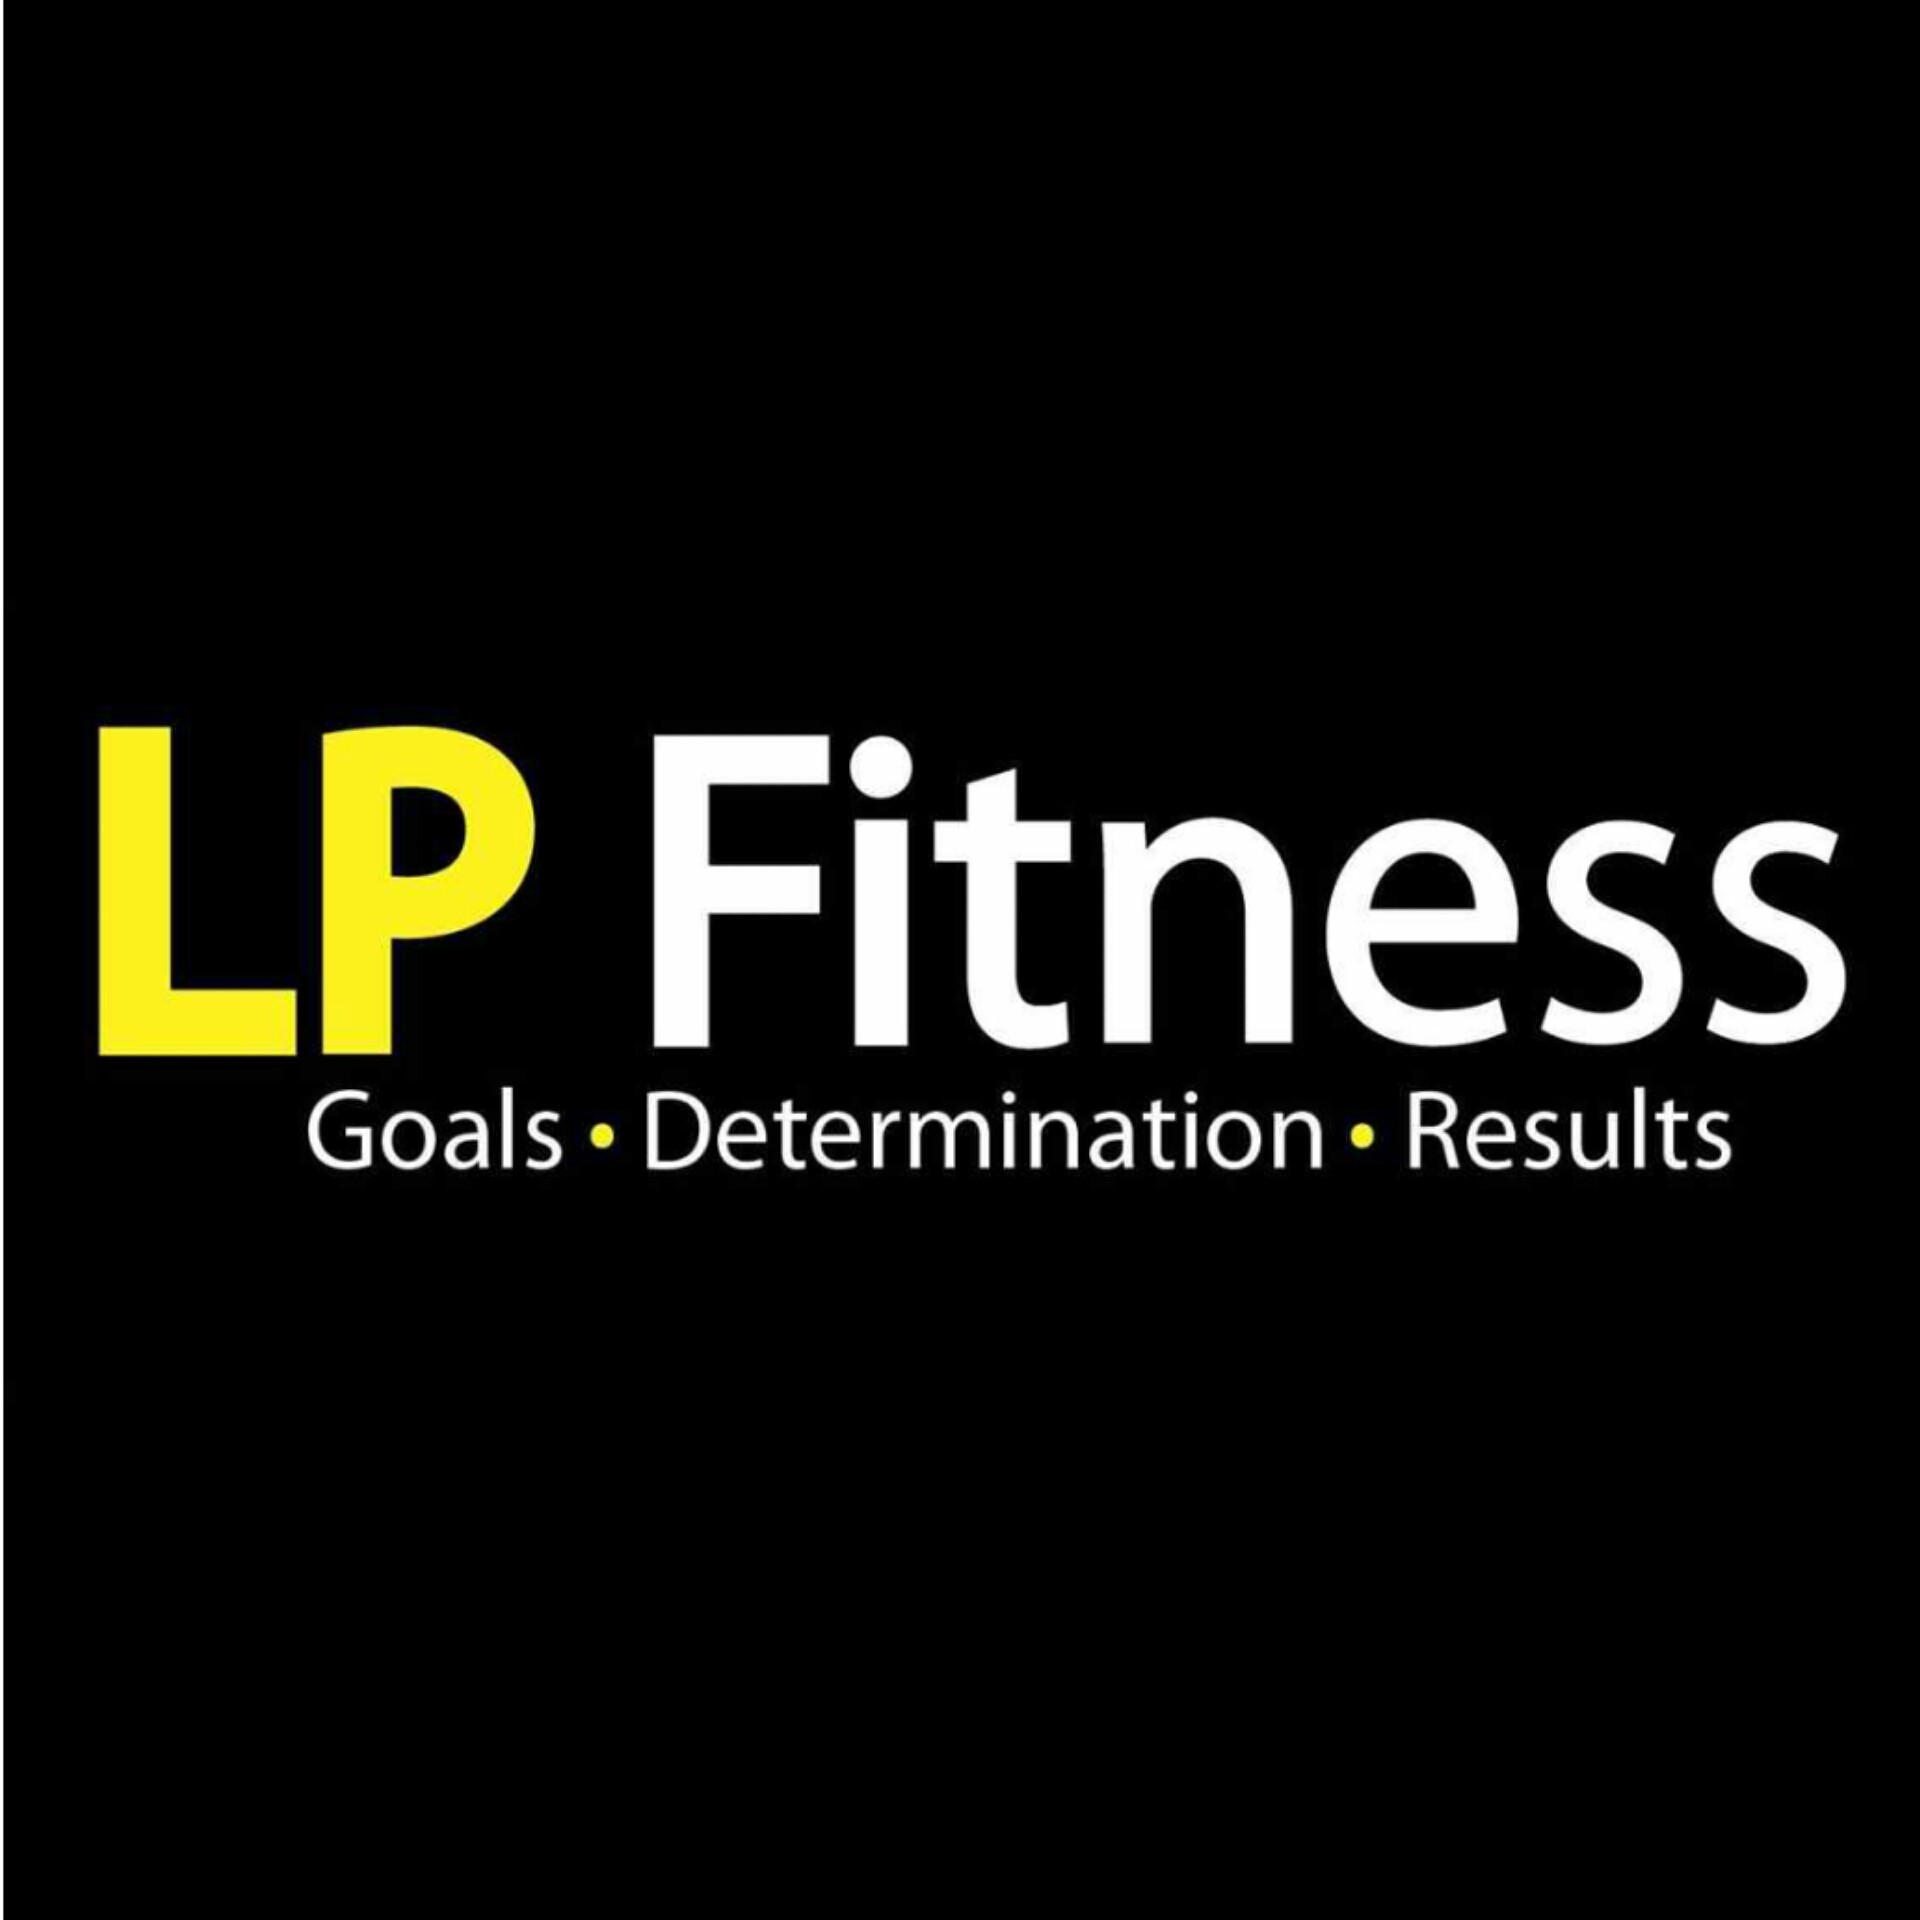 LP Fitness Gear